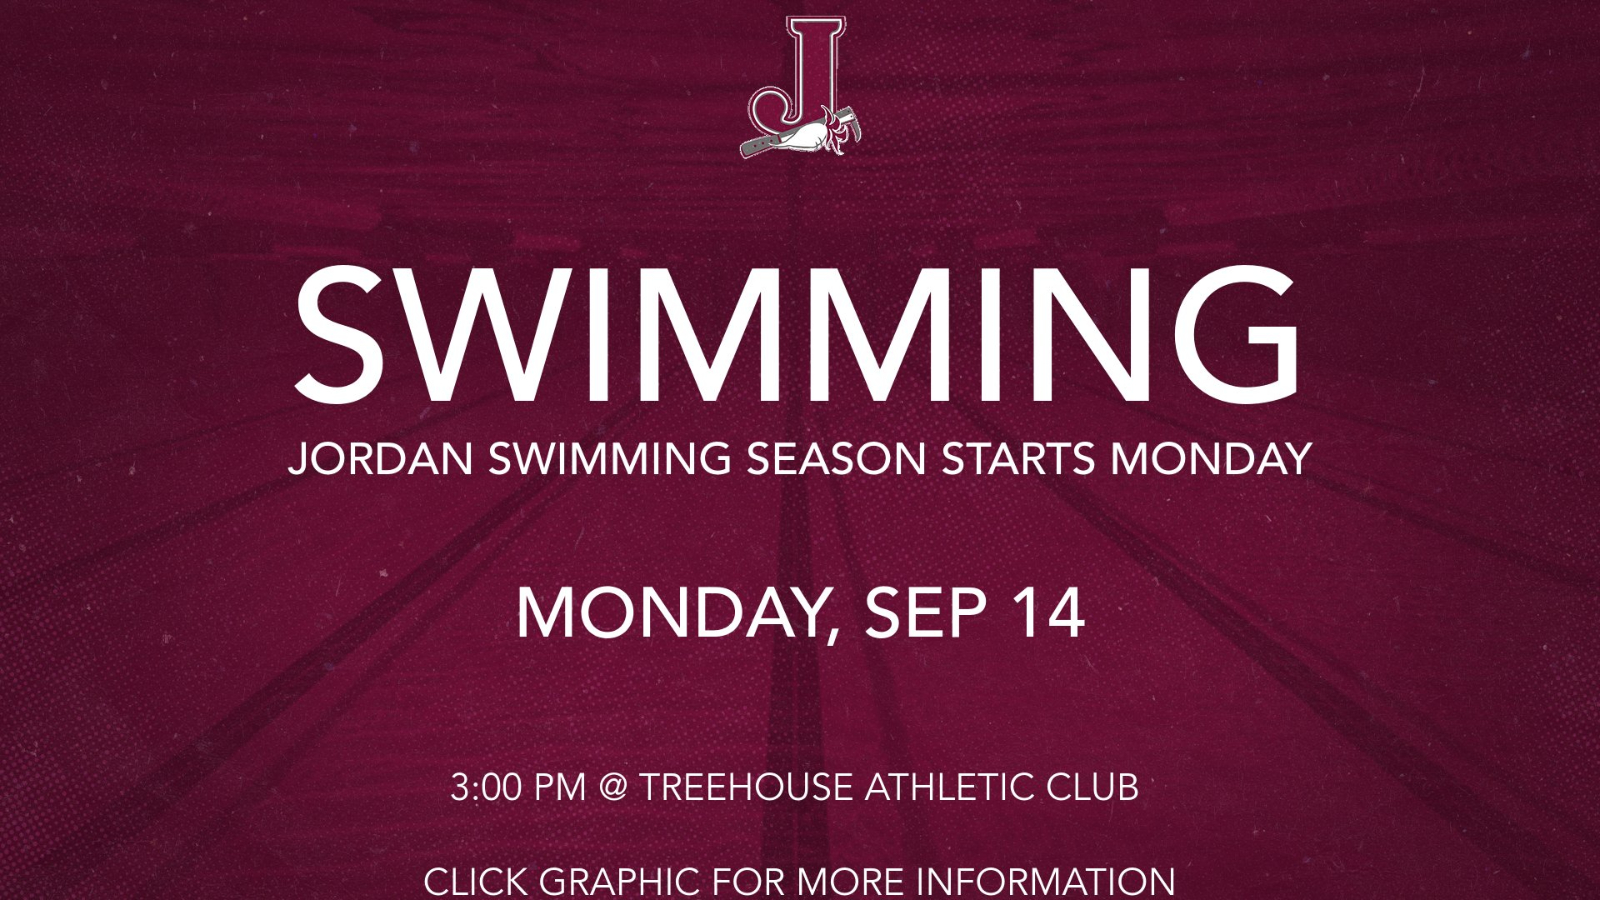 Coed Swimming Starts Monday, Sep 14